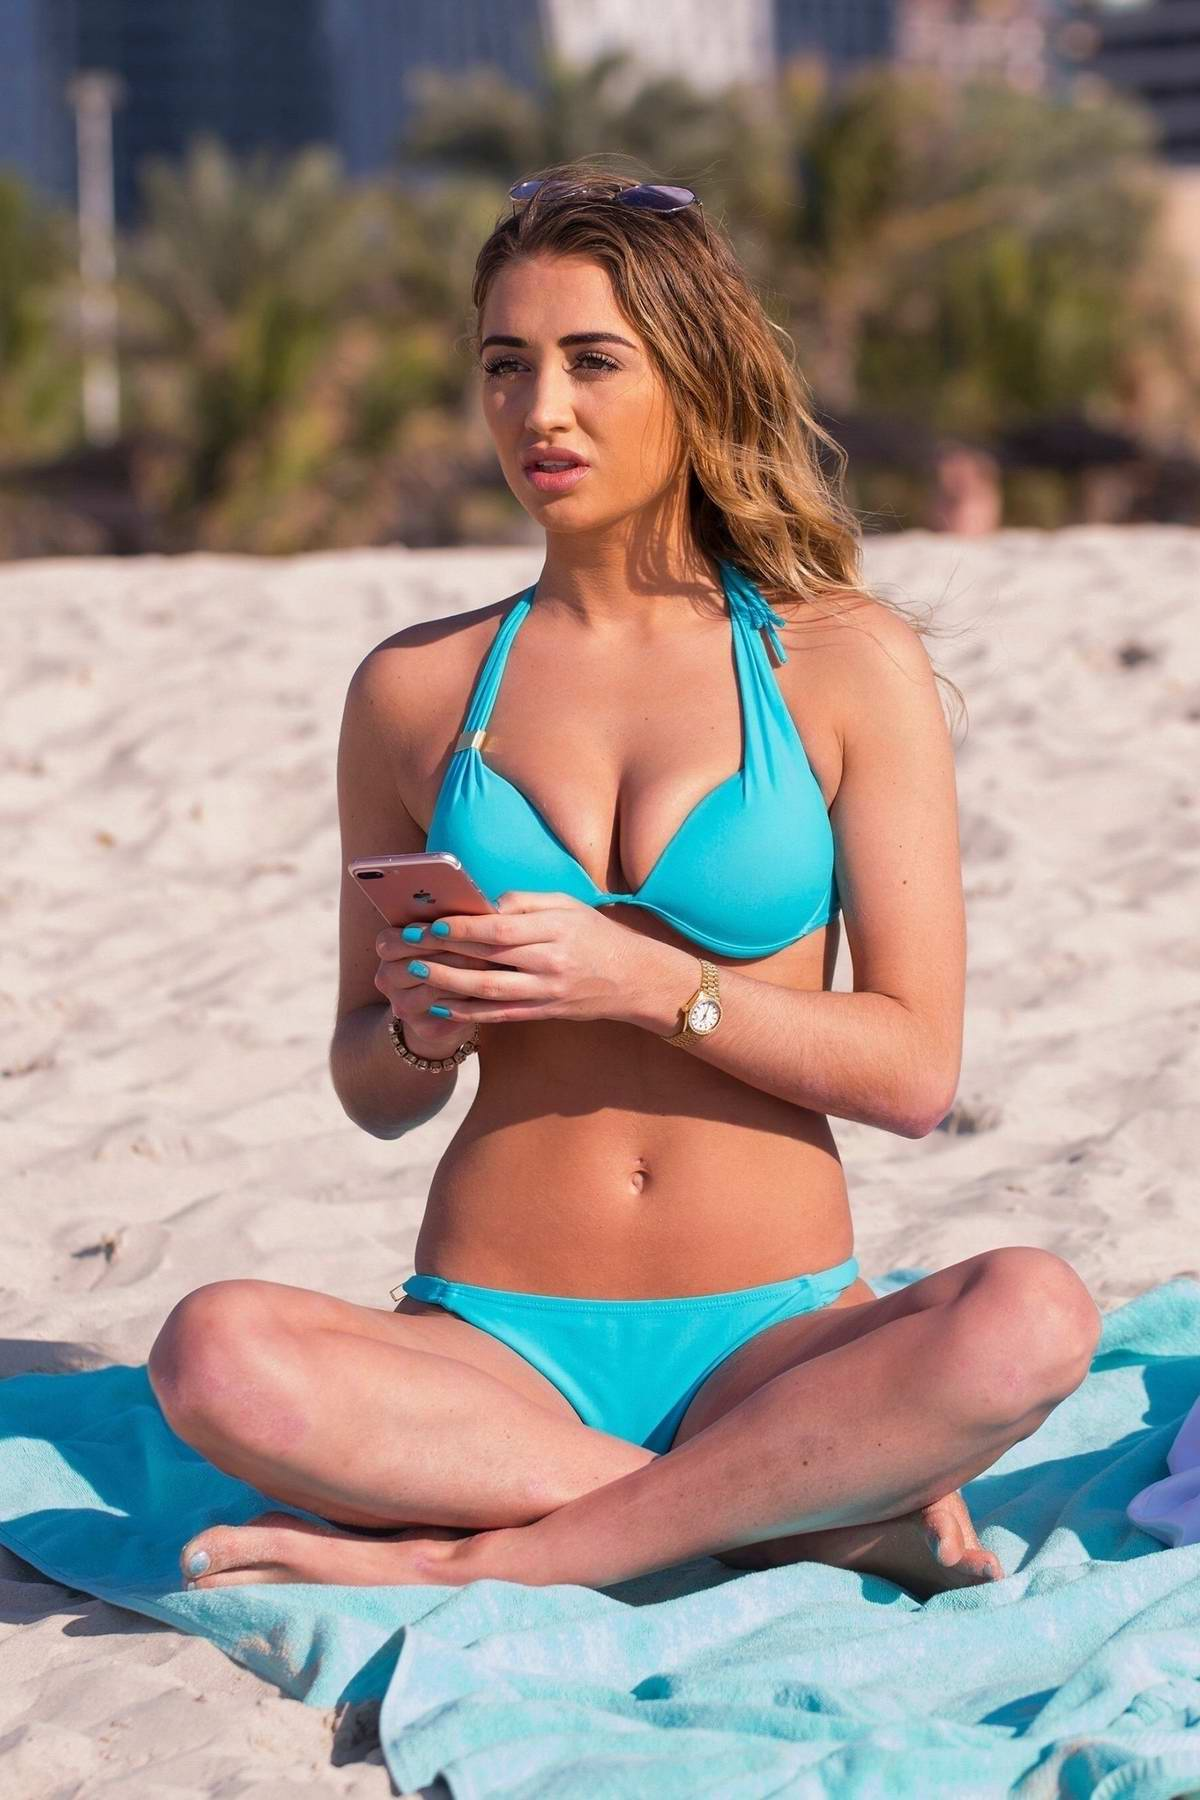 Georgia Harrison enjoys the beach in a blue bikini while on holiday in Dubai